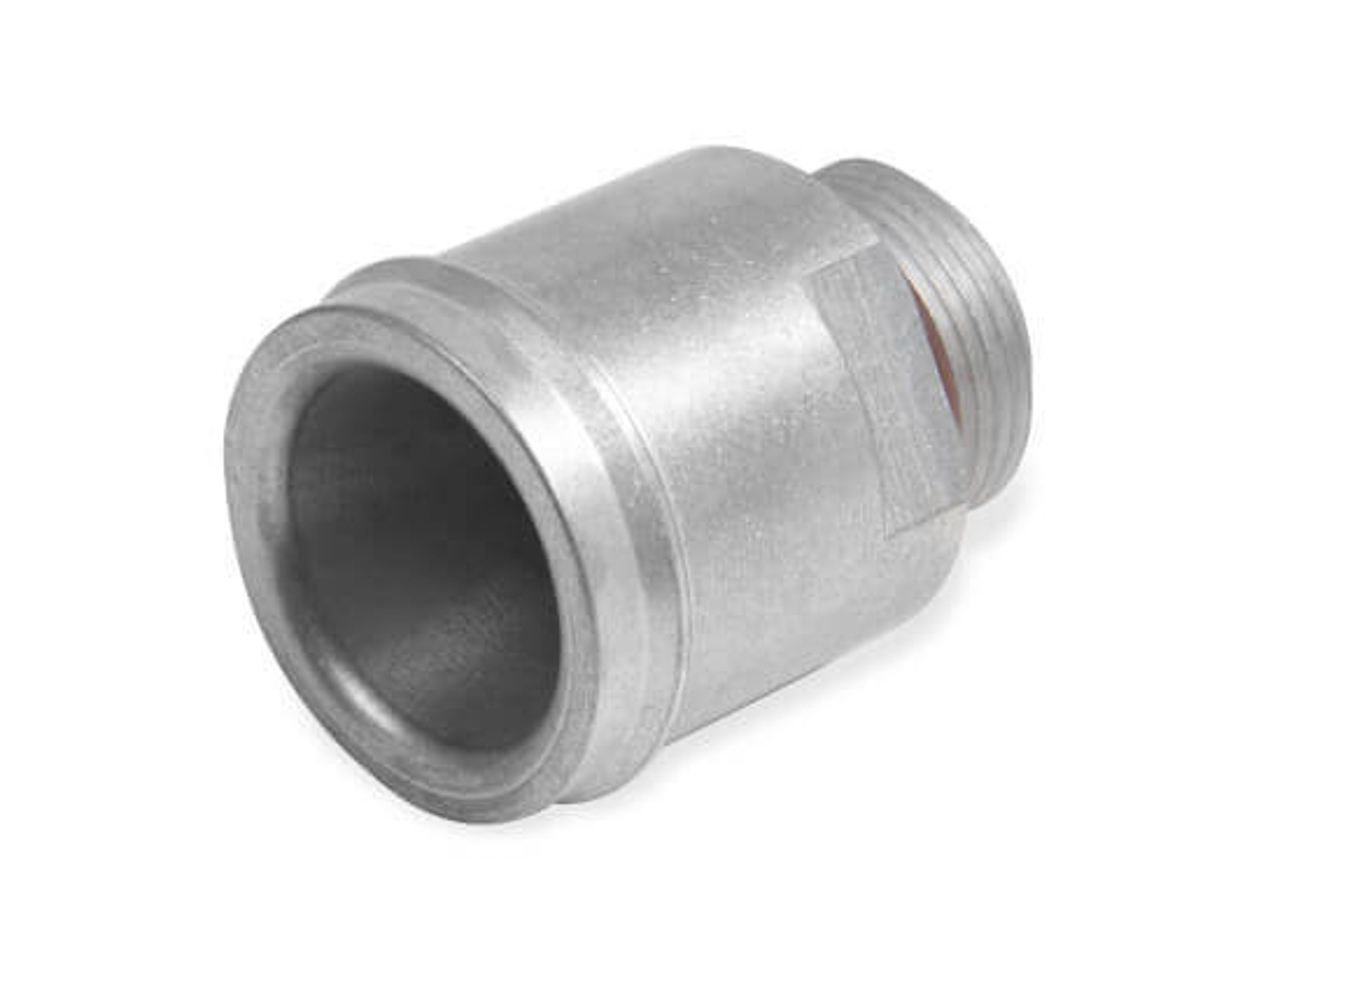 Holley FB402 Radiator Hose Fitting 1.75in to 16an ORB